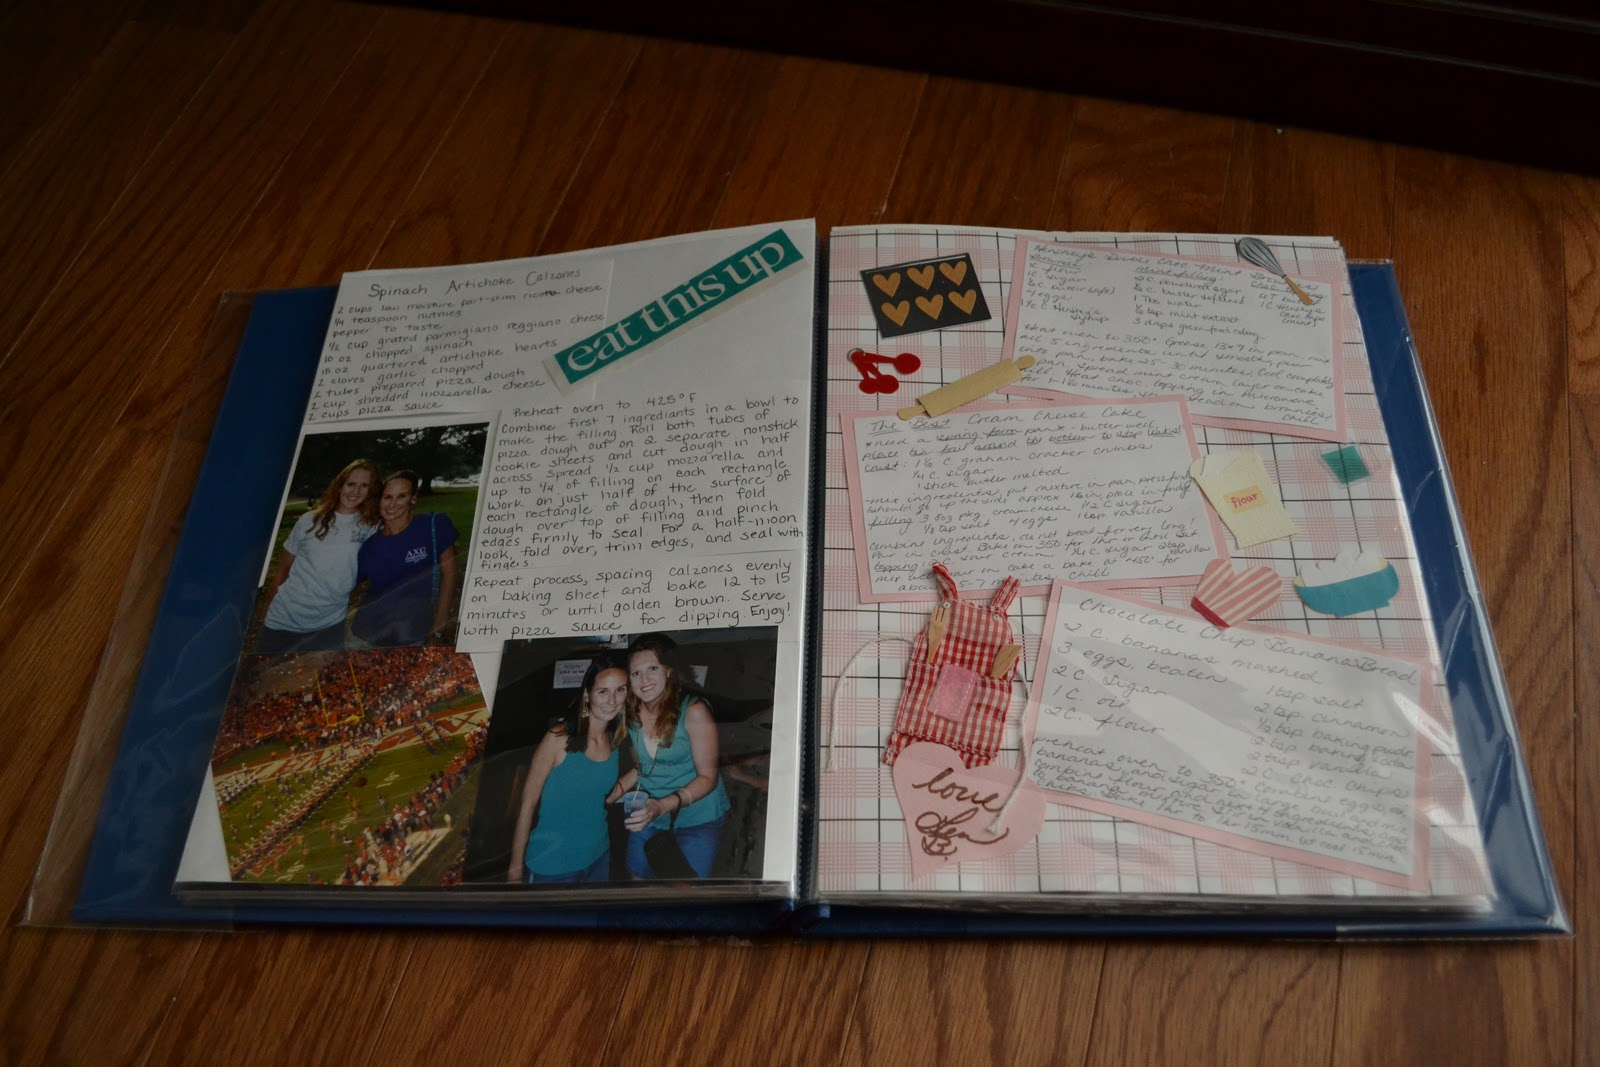 How to make scrapbook about yourself - So As You Can See People Can Really Get Creative With It And Add Their Own Touches You Could Even Make One All By Yourself For Someone As A Gift If You